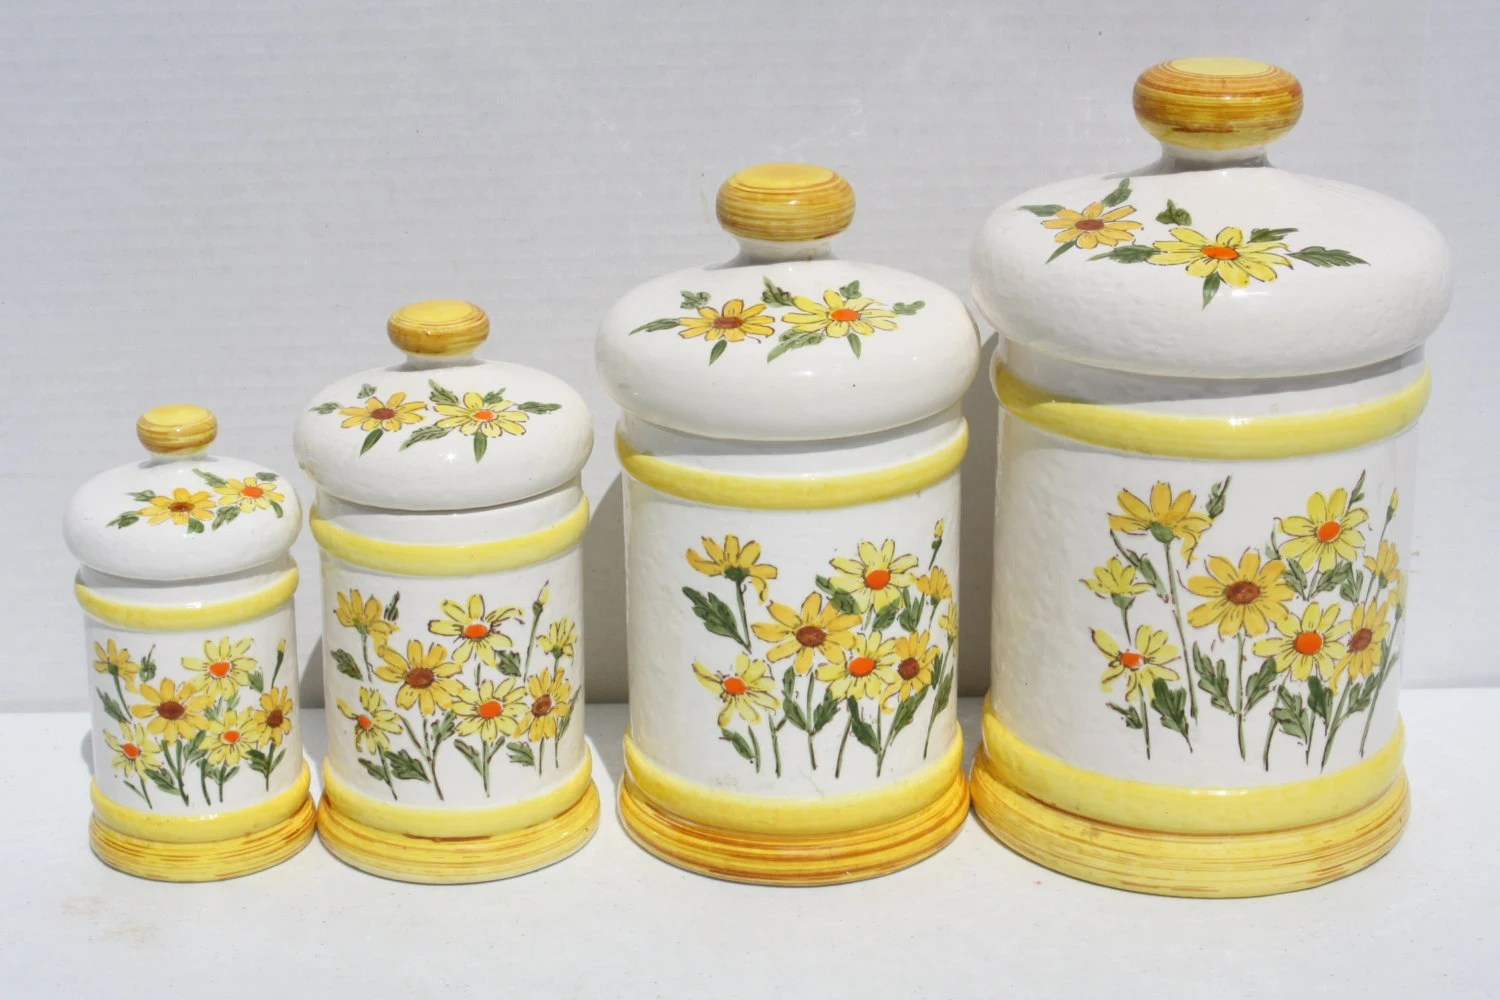 Vintage 70s Daisy Flower Ceramic Canister Kitchen Set Sears